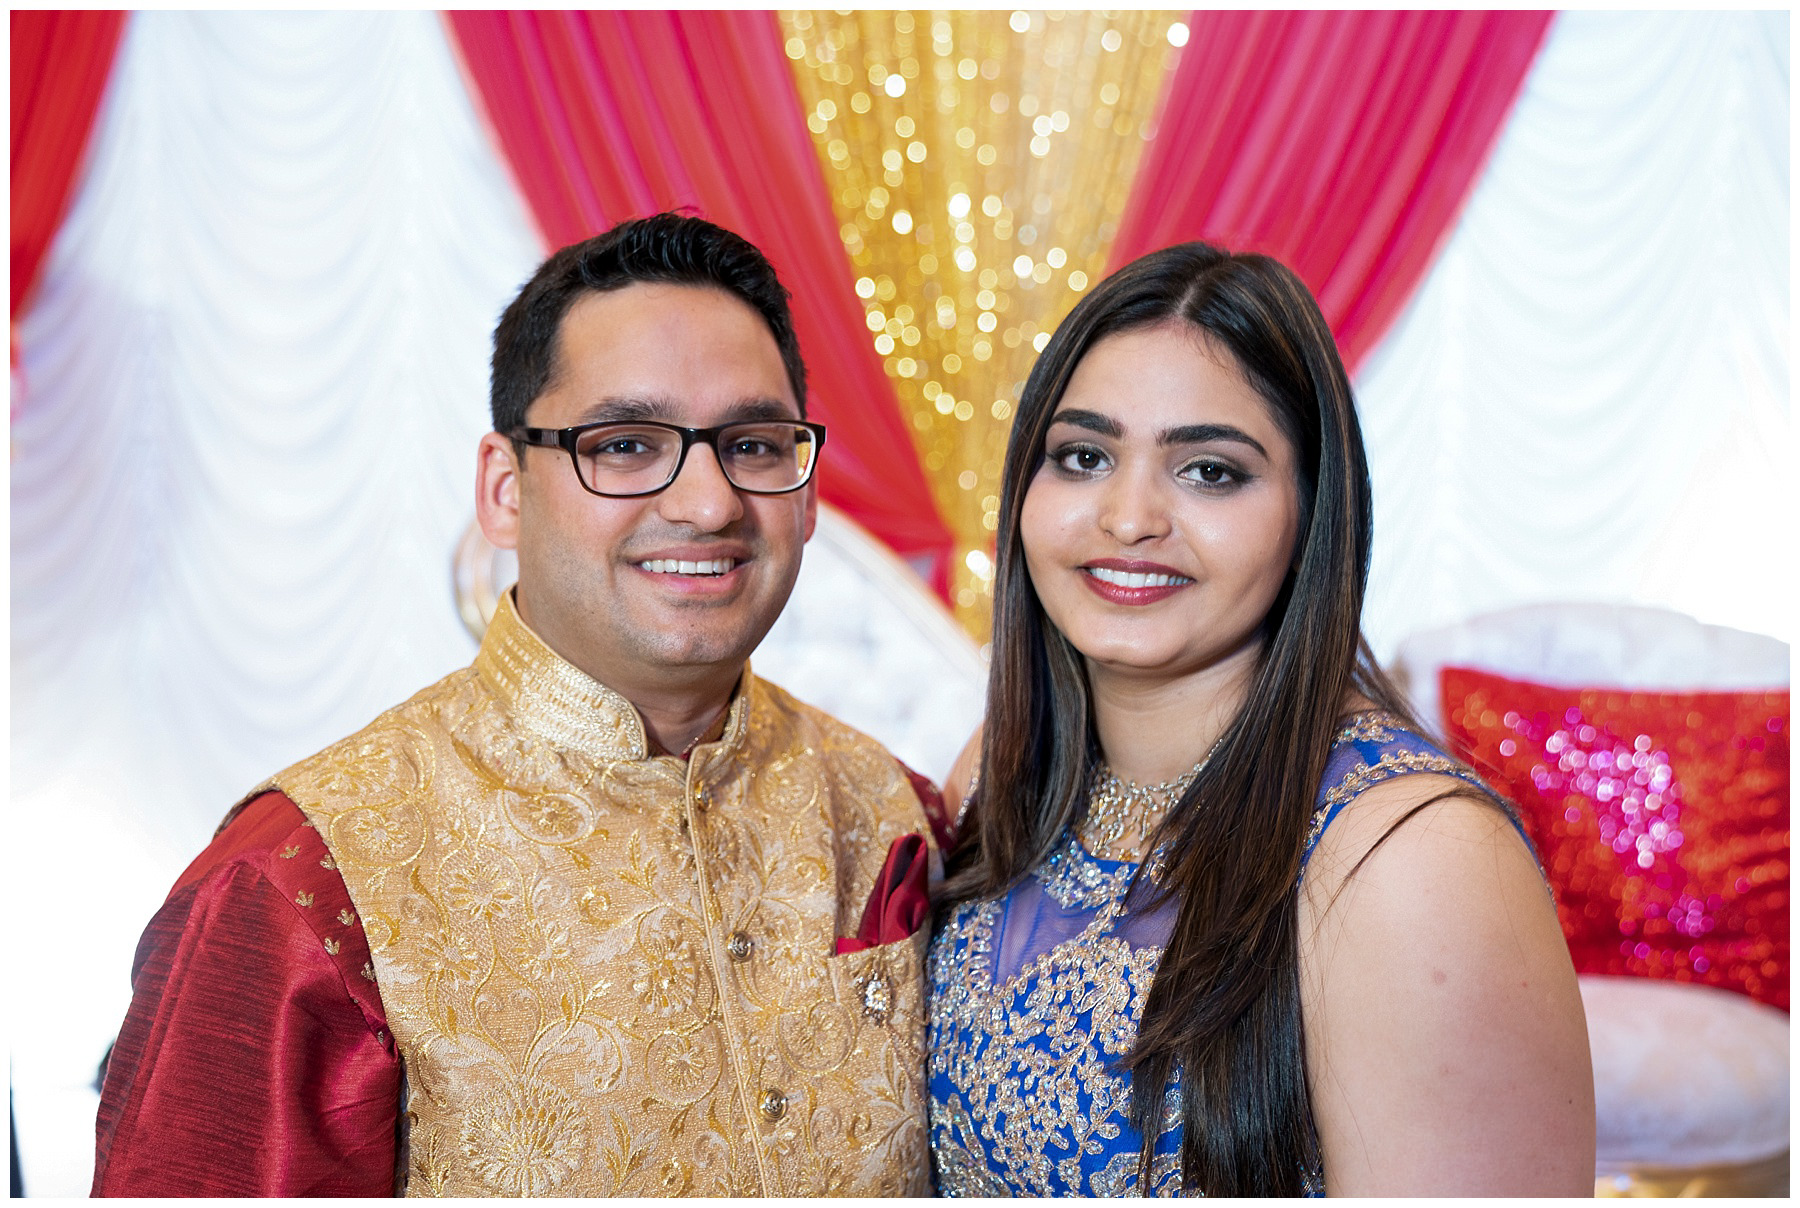 royal-alberts-palace-fords-nj-engagement-vidushi-ankush-31.jpg